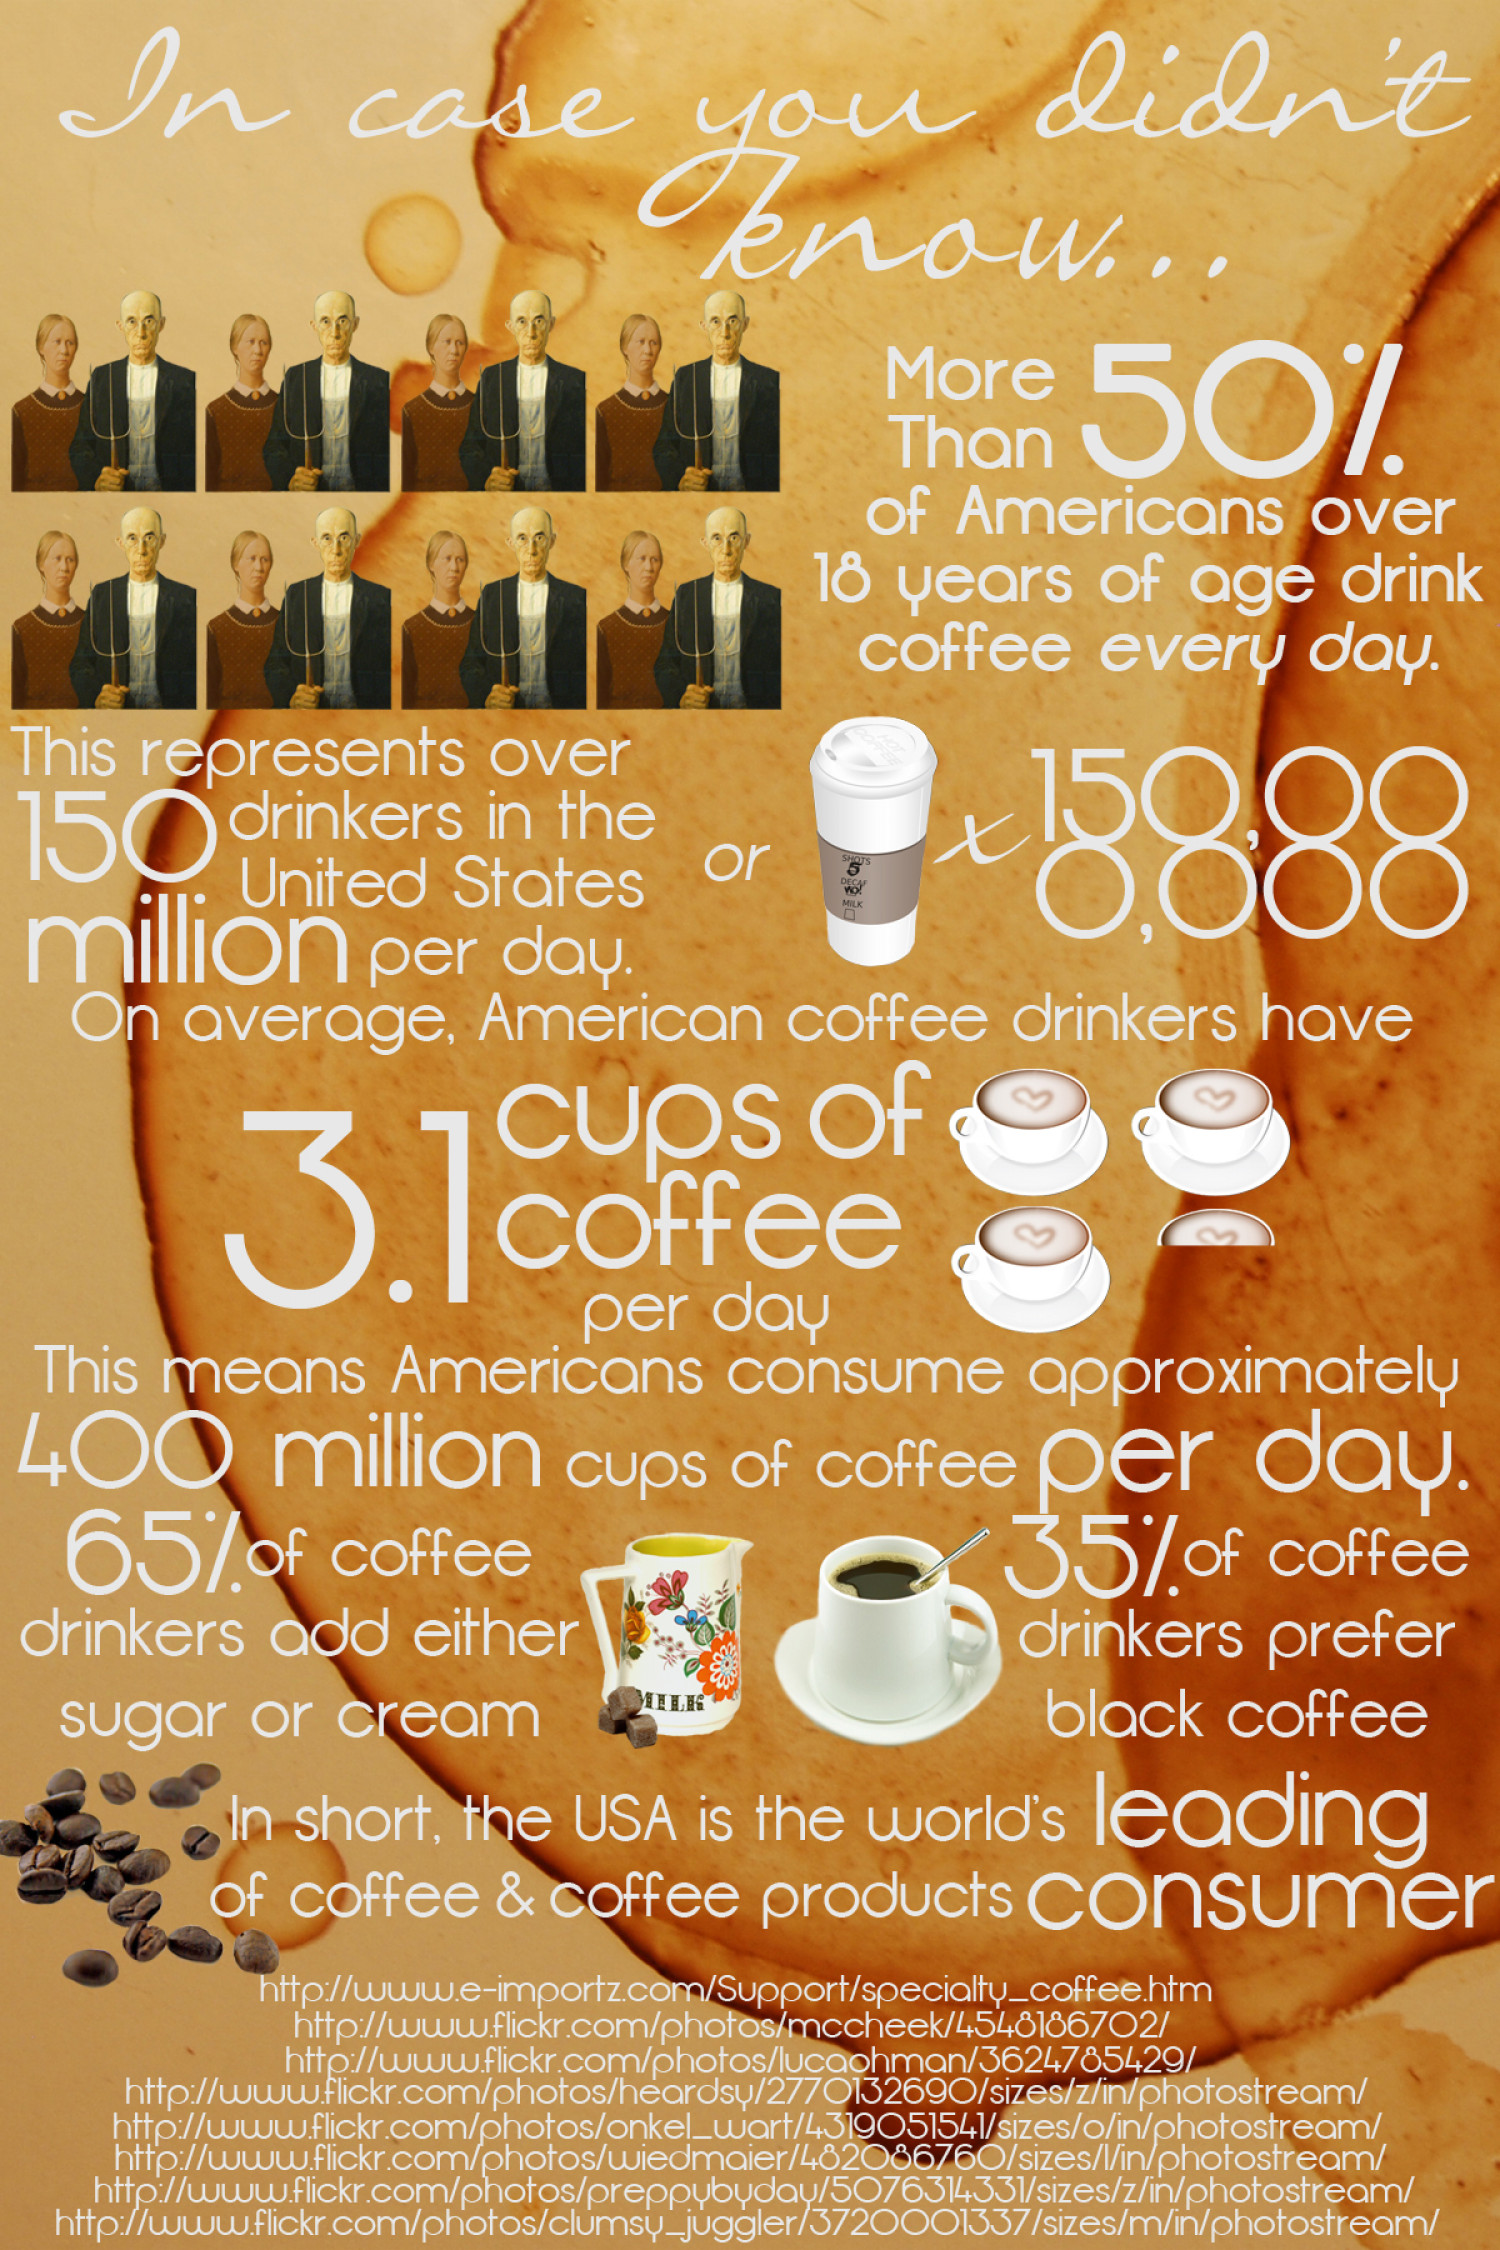 Coffee Consumption in the USA Infographic